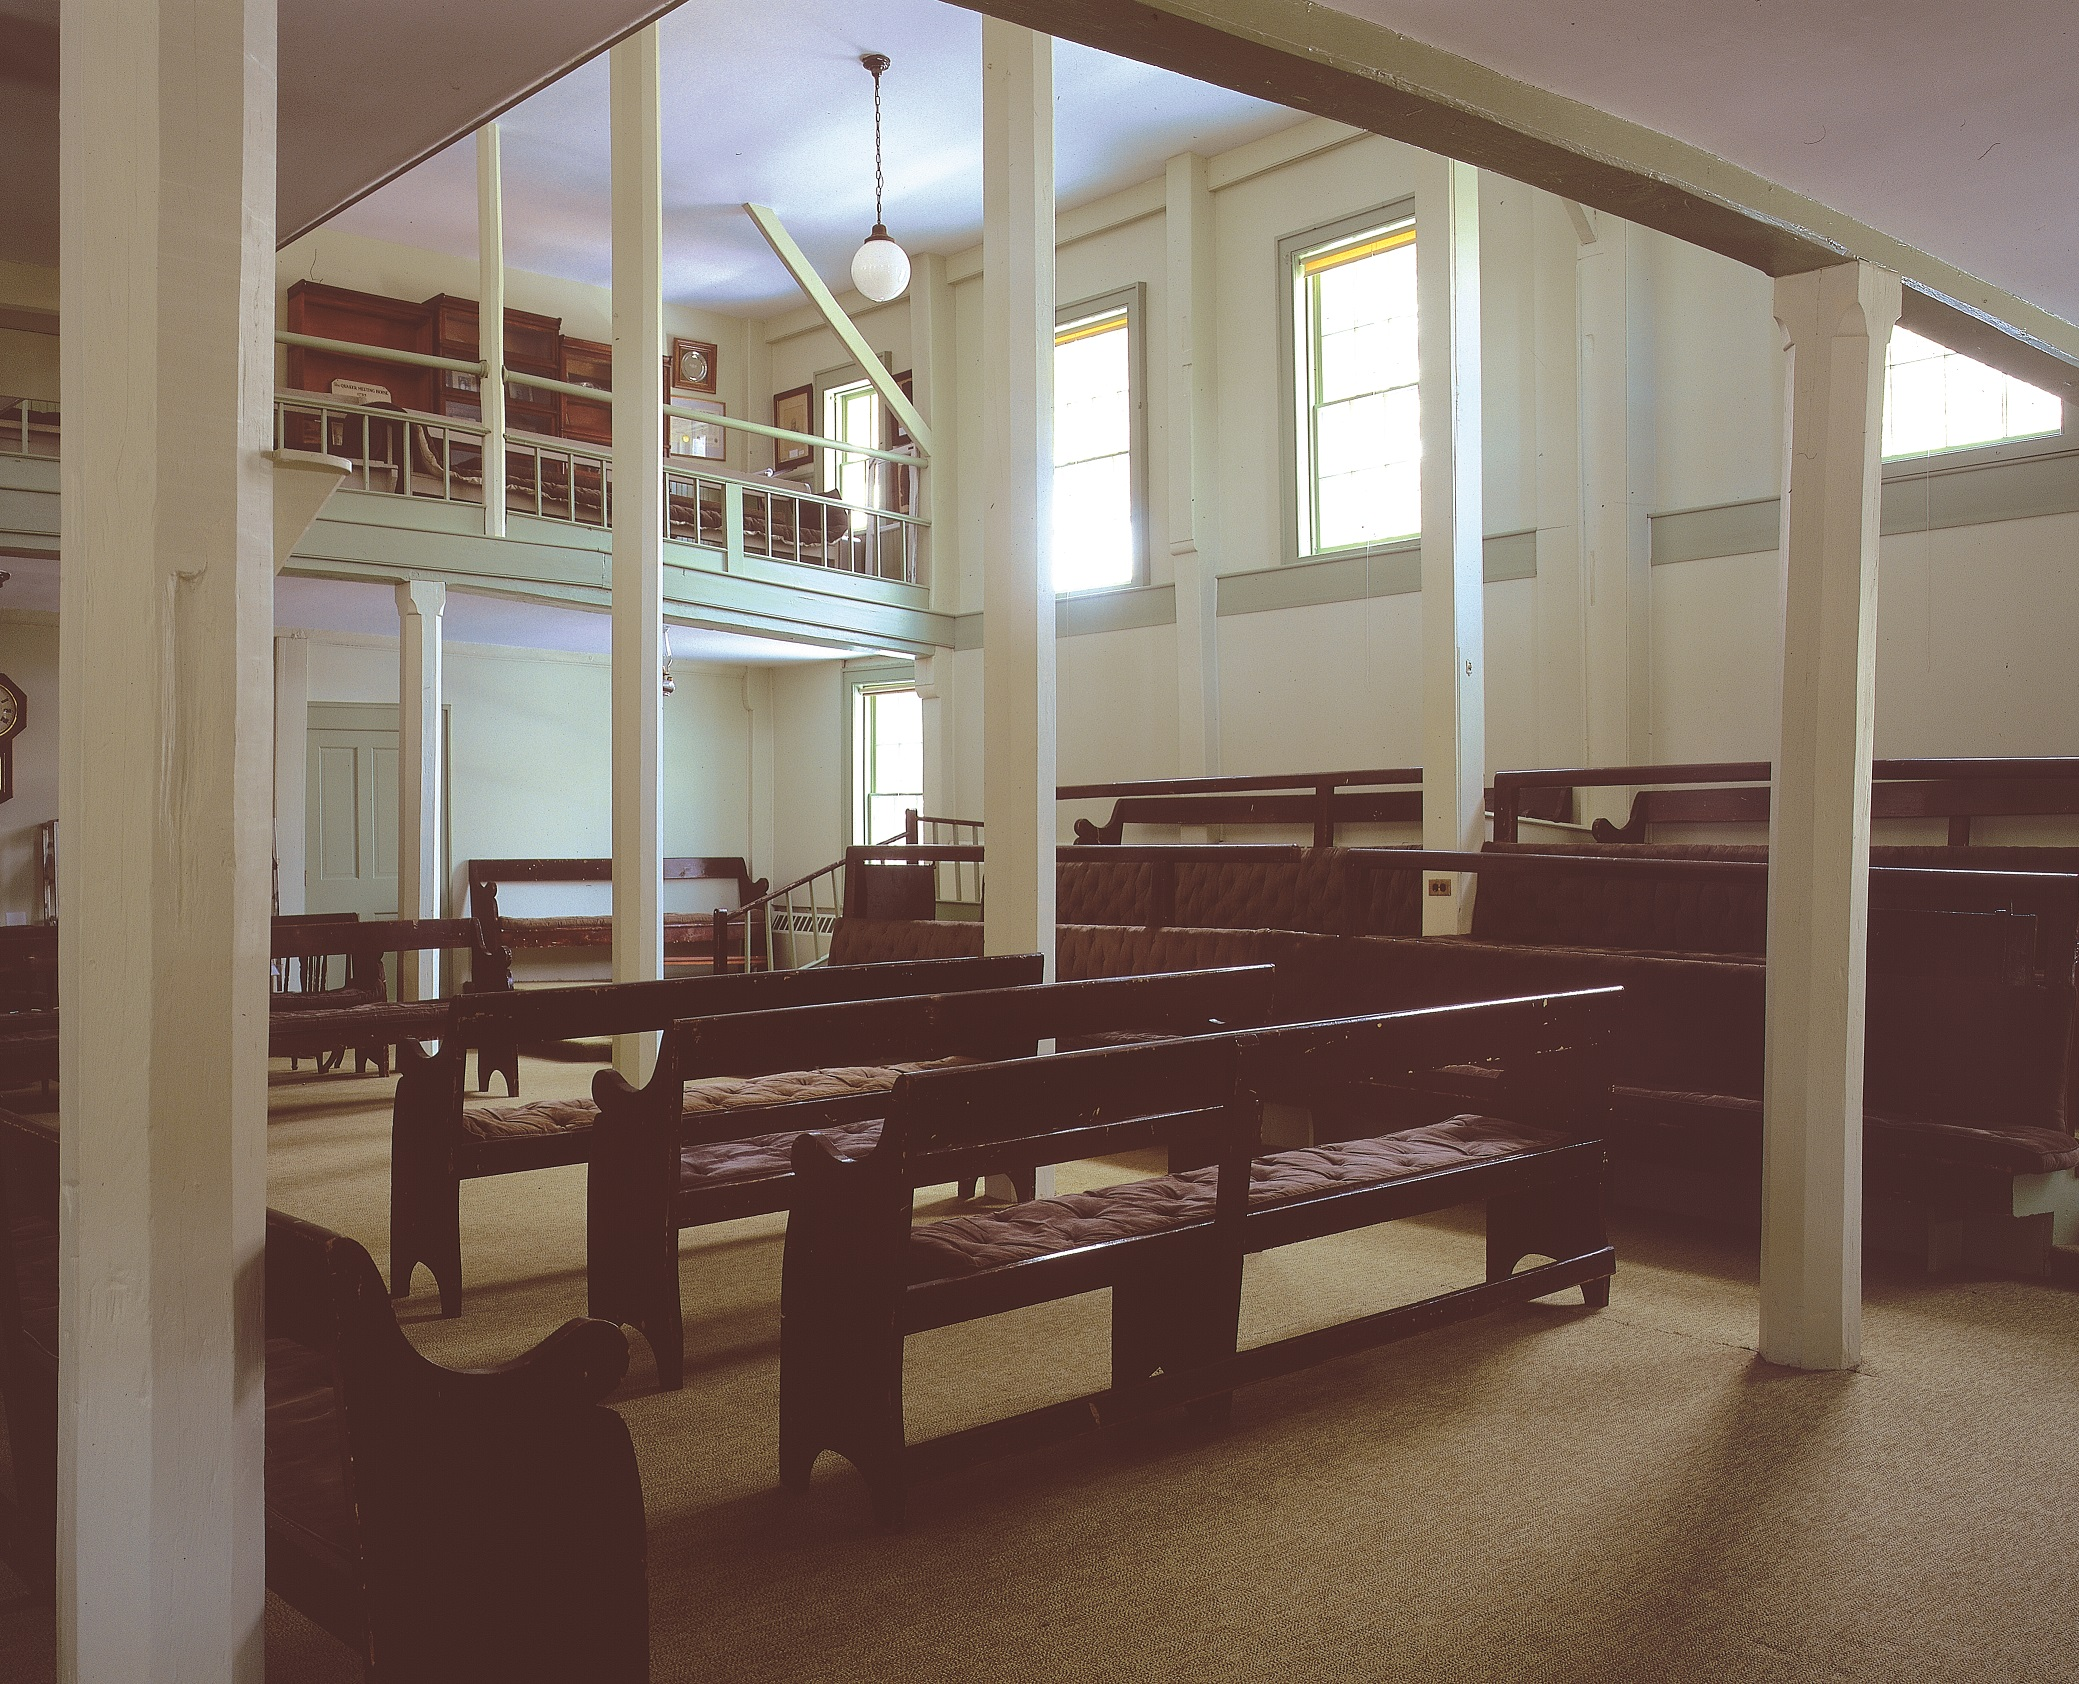 Interior of Chappaqua Meeting House